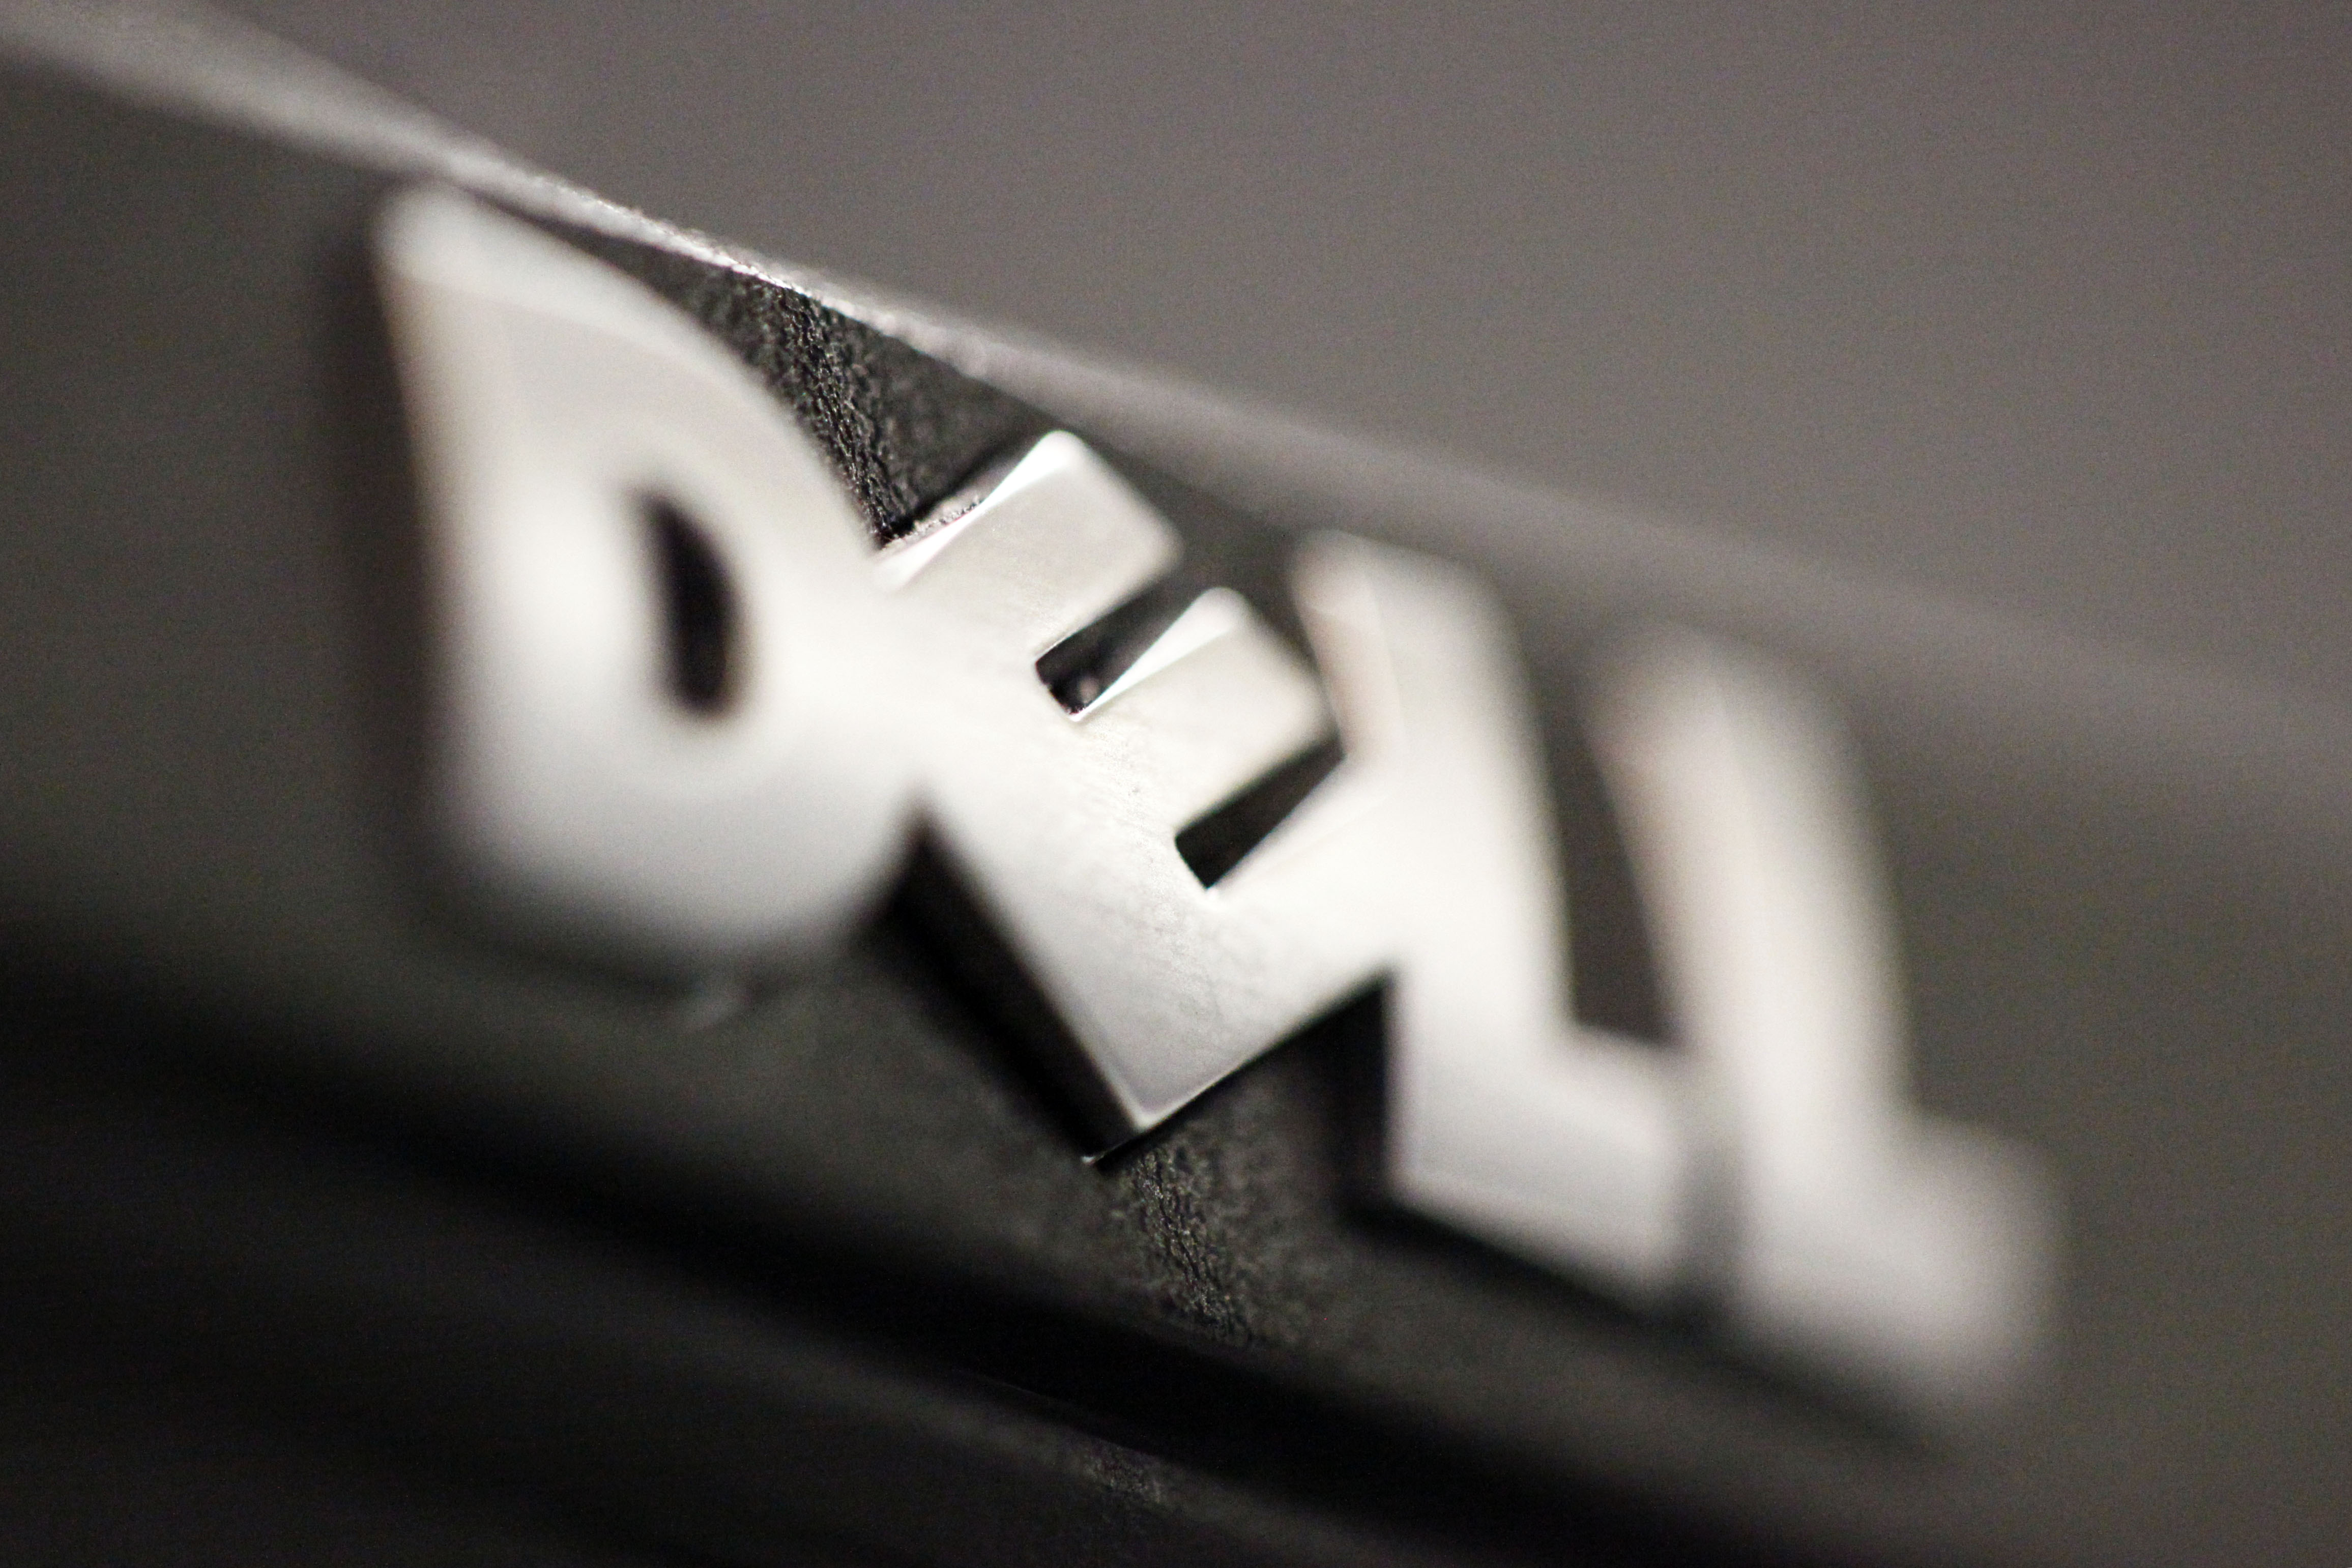 Japan's NTT Data to buy Dell's IT services division